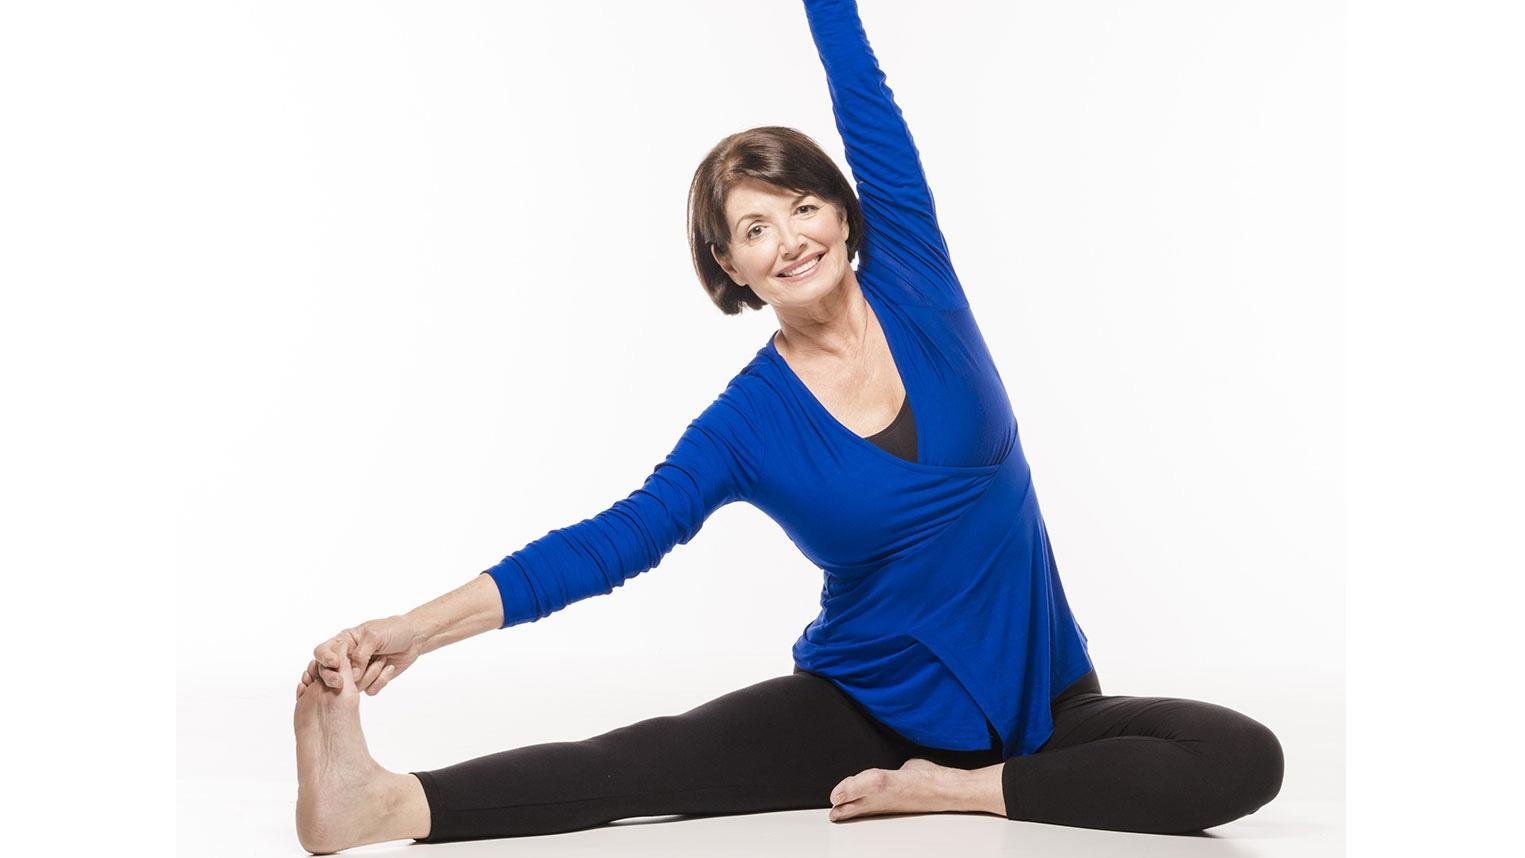 Easy Yoga - The Secret to Strength and Balance